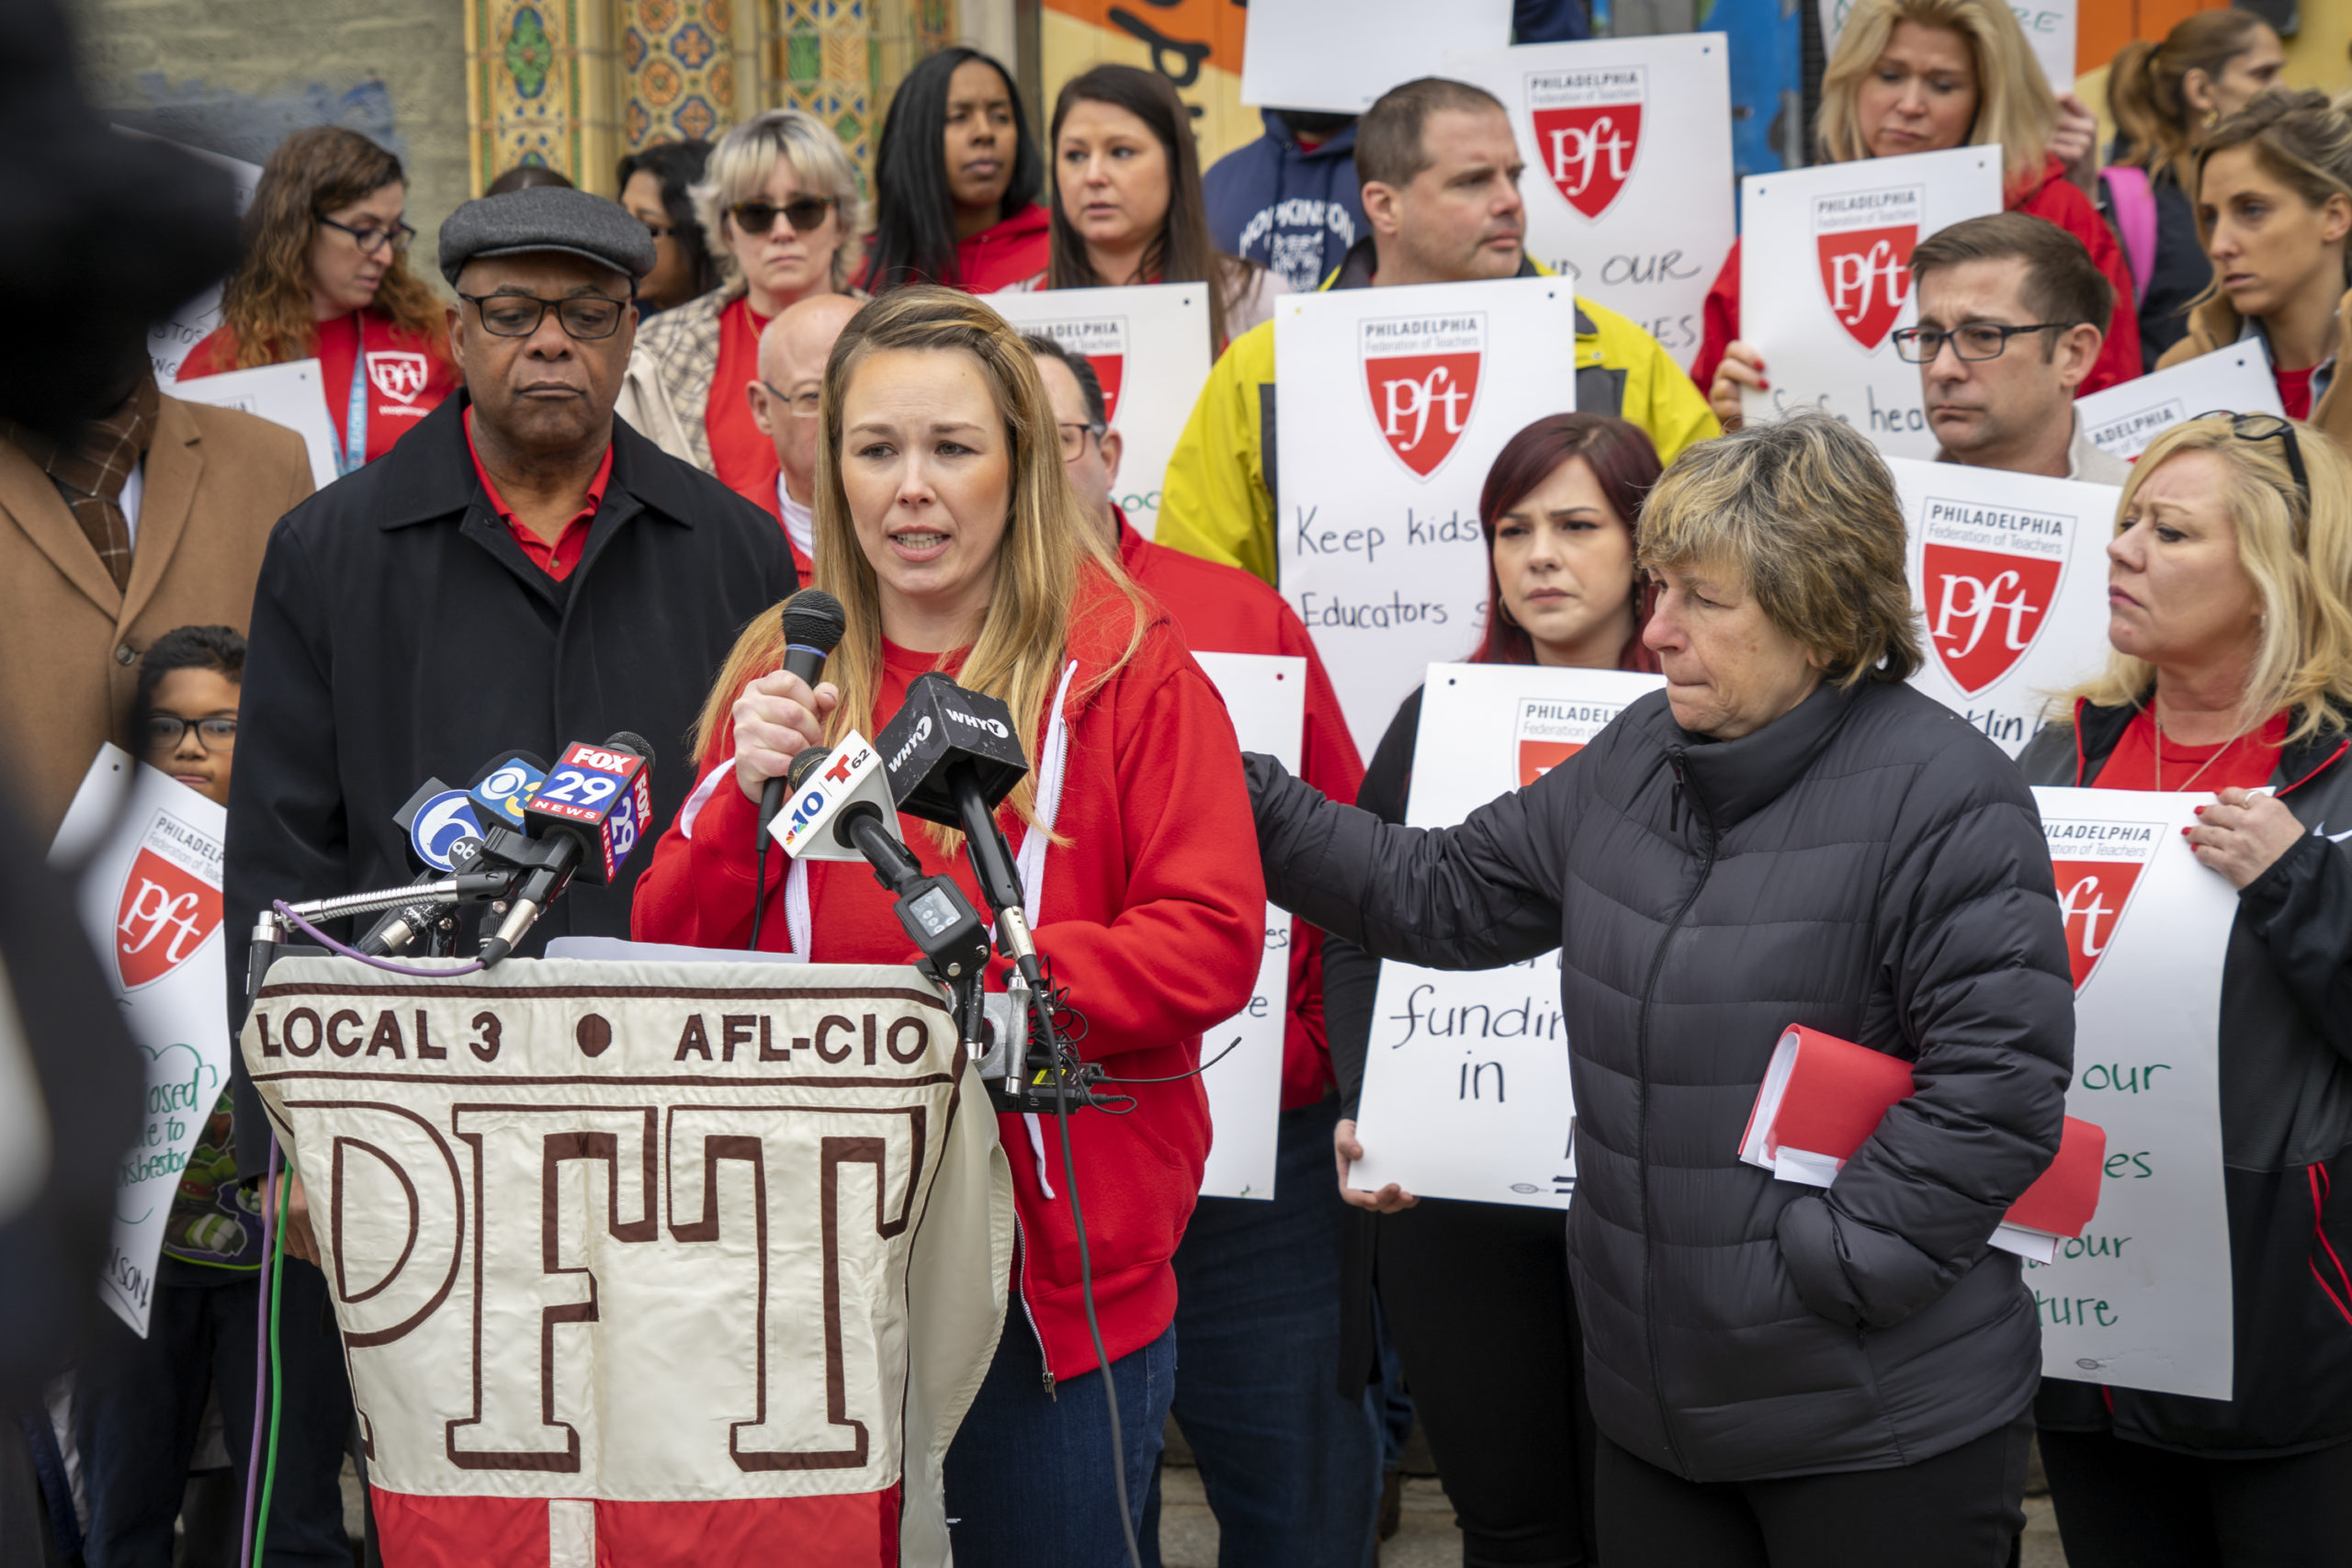 Photo: PFT Rally about Hopkinson Elementary